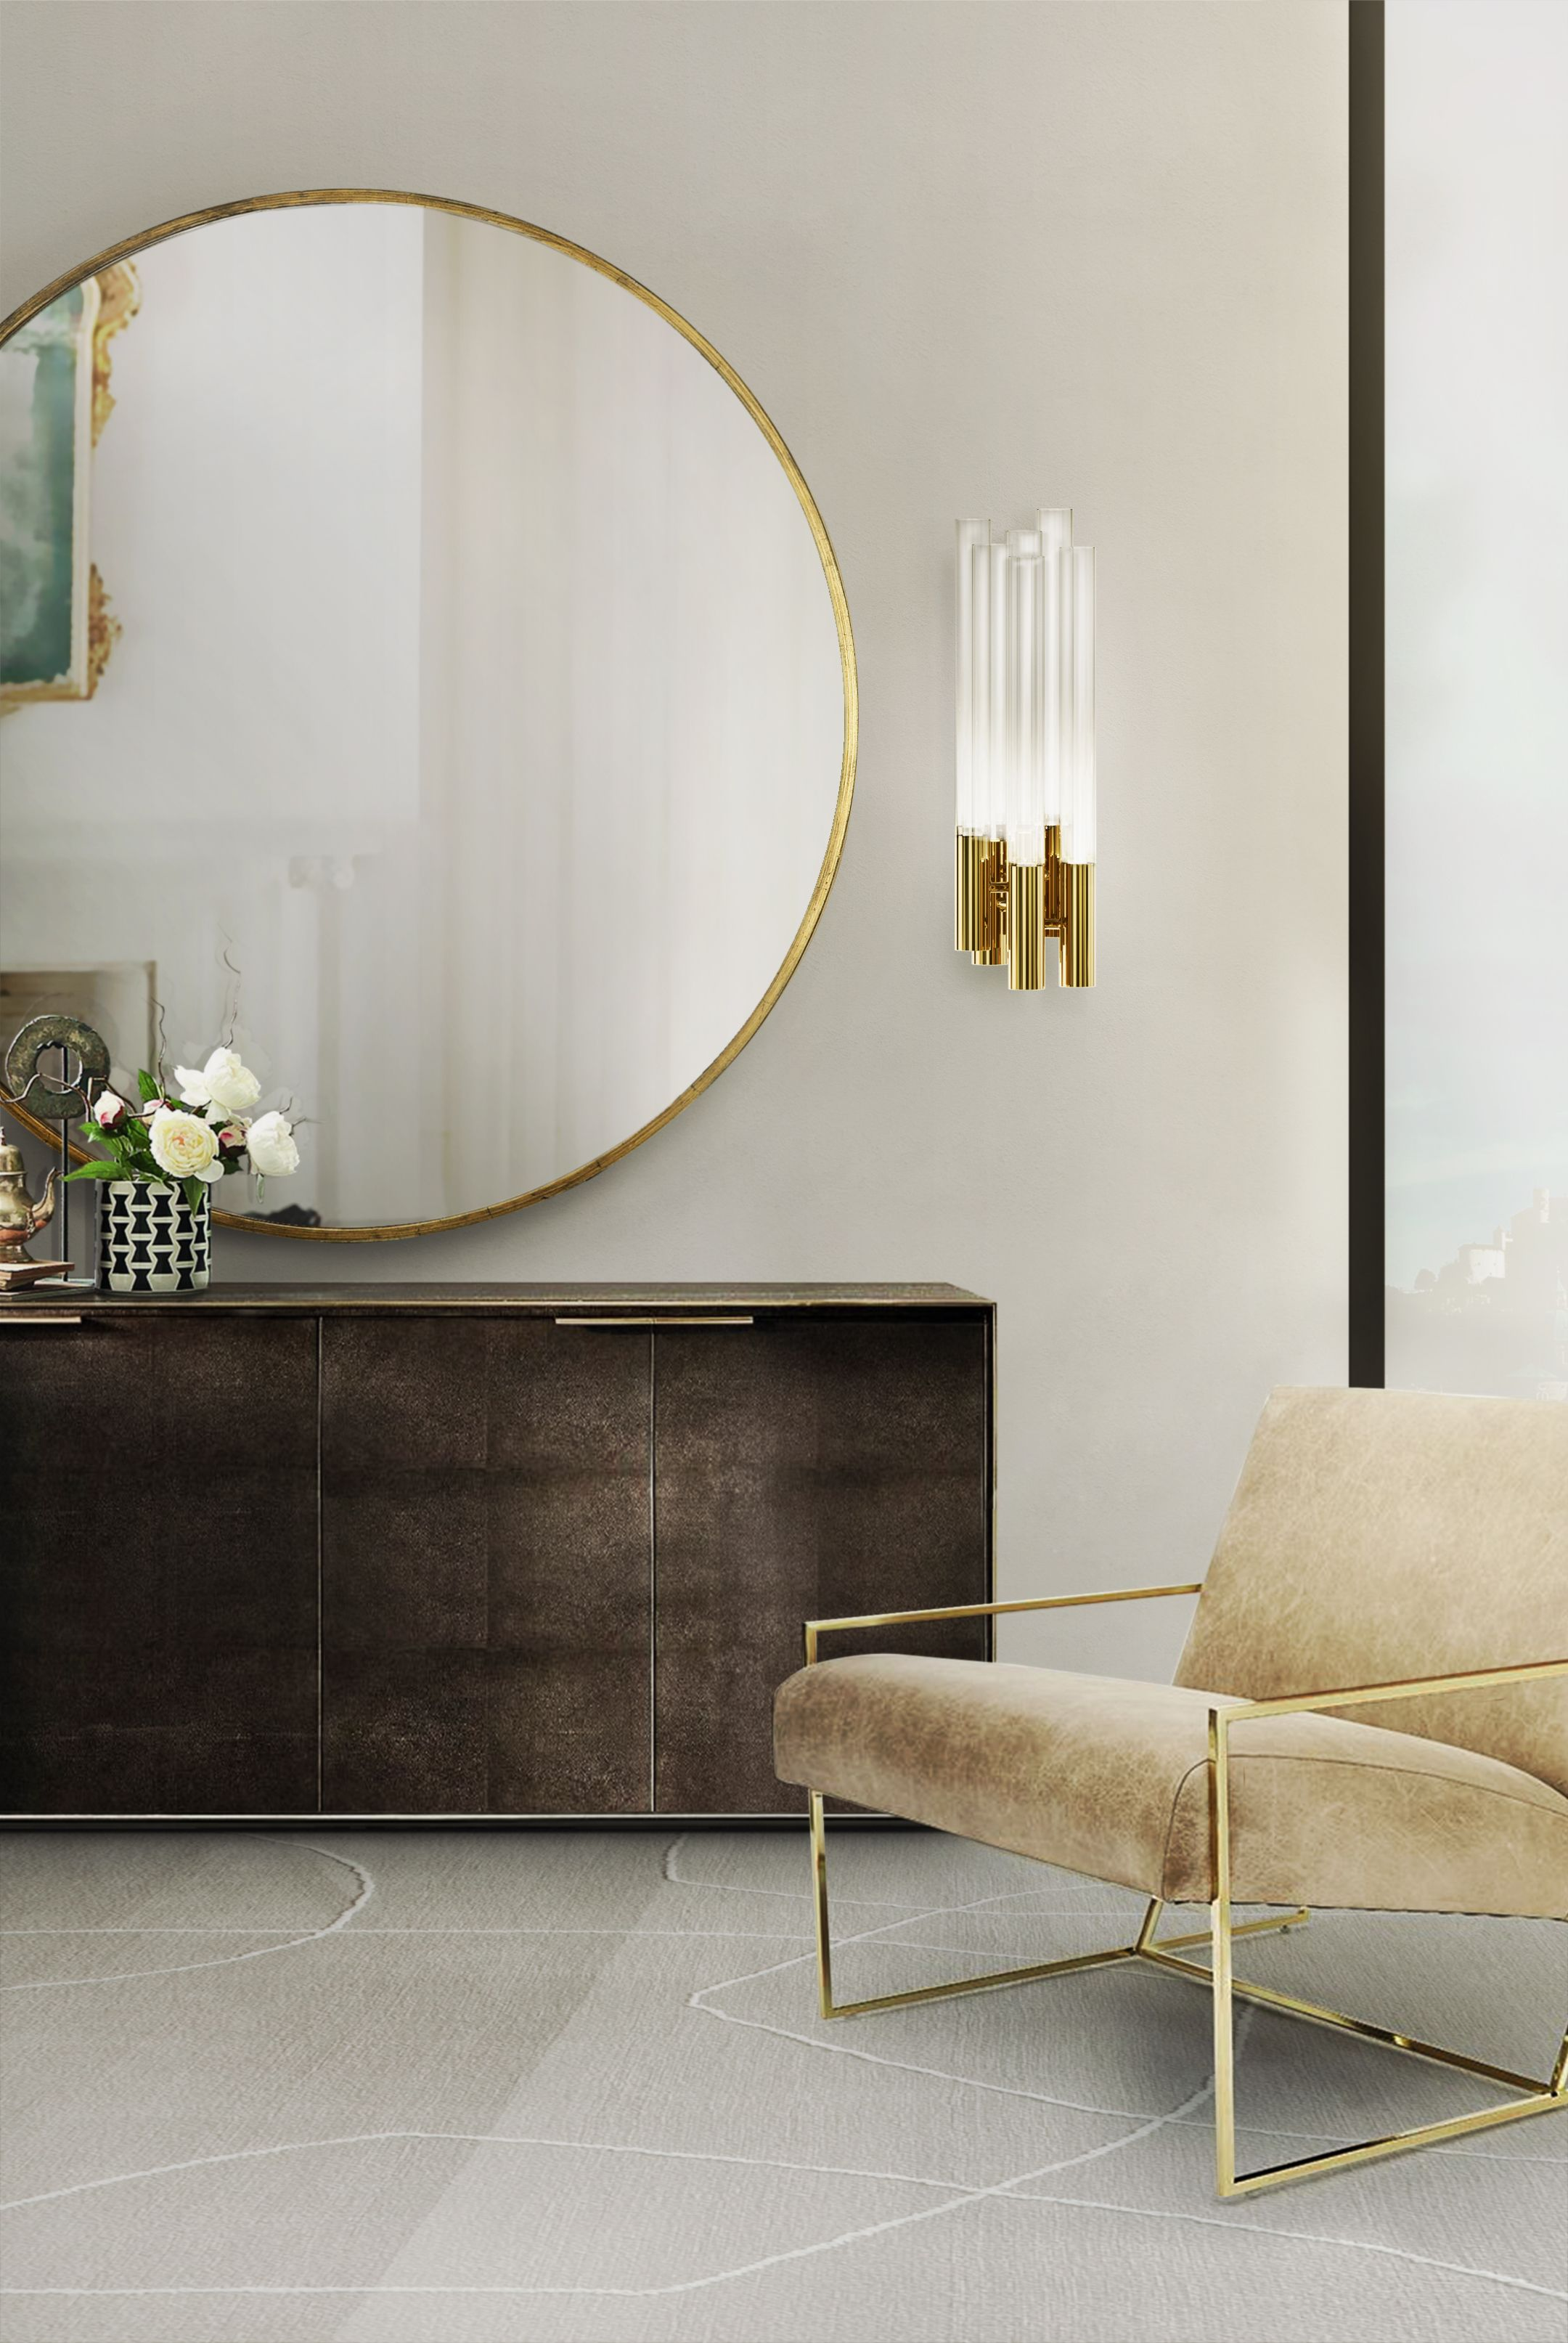 Wohnzimmerspiegel über couch create a glamorous decor with luxxuus wall lamps  home decor